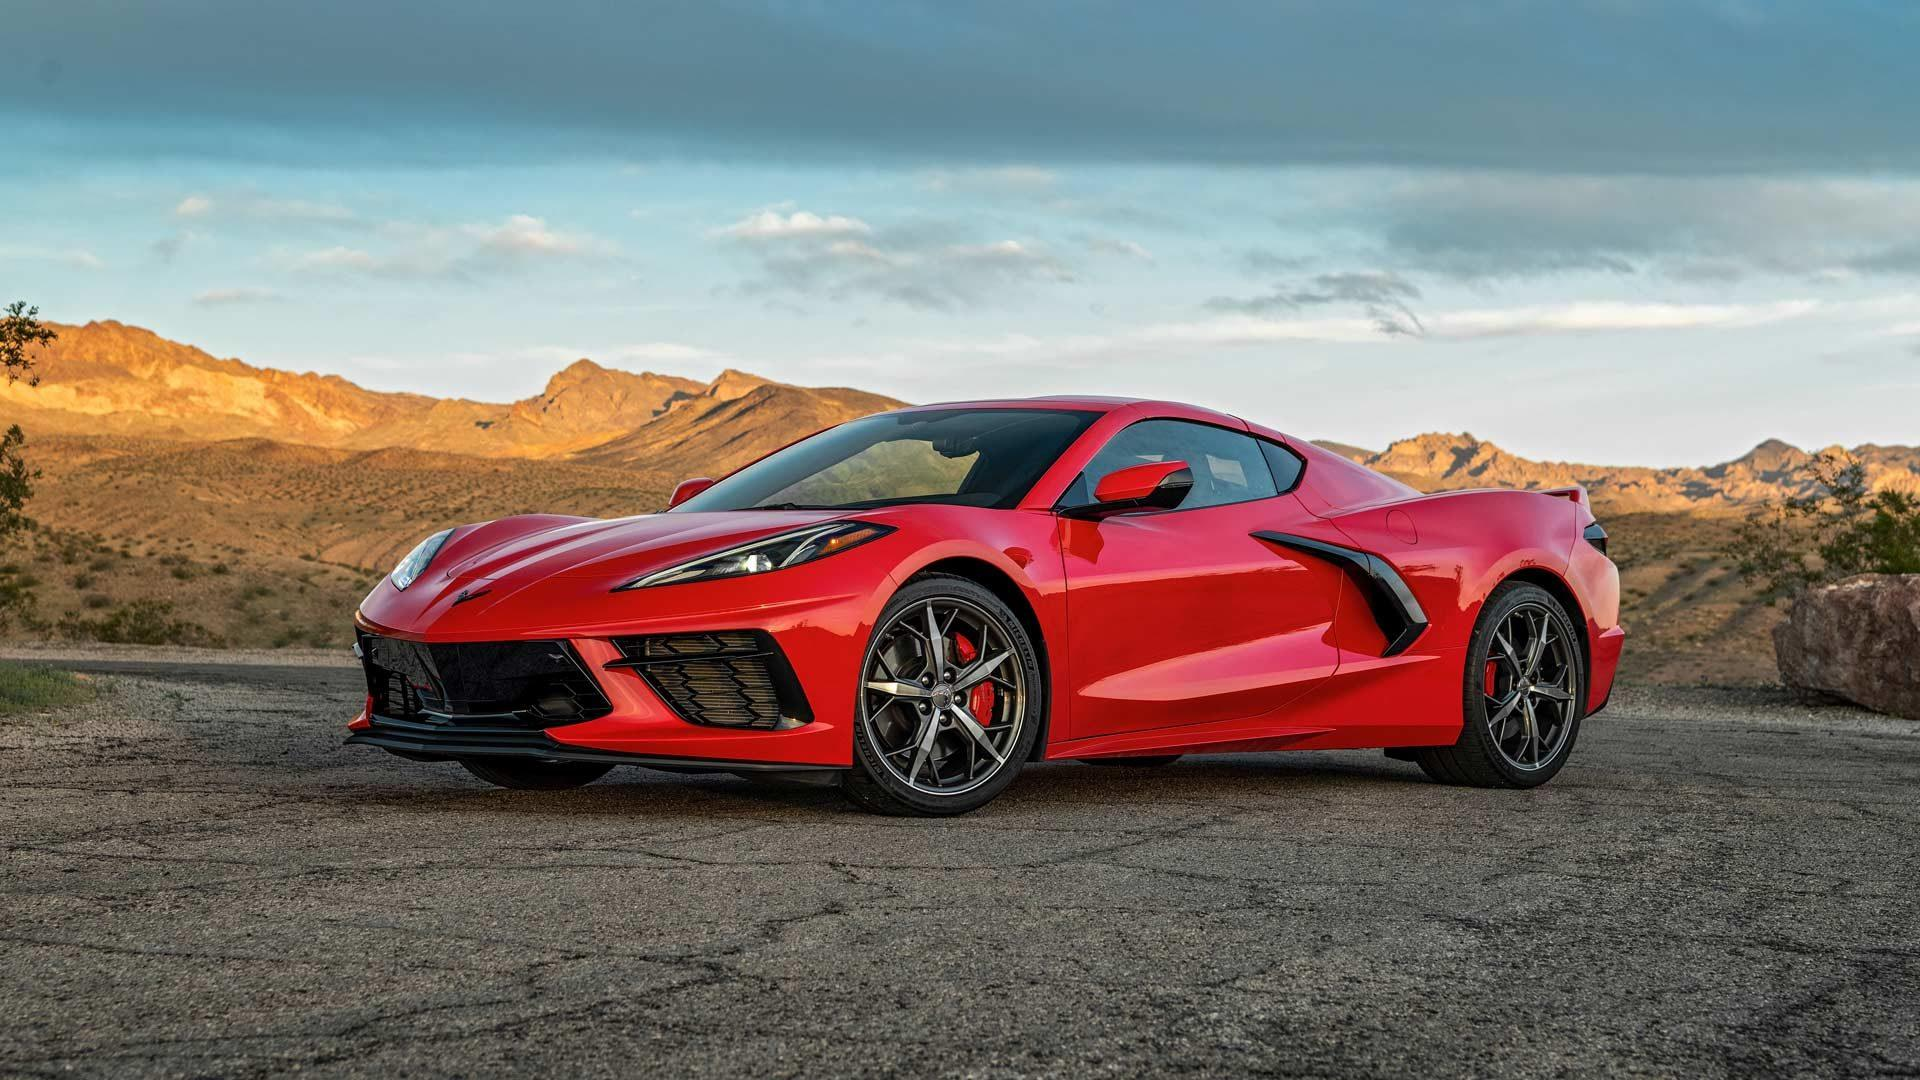 When will the right-hand-drive Chevrolet Corvette be on sale?